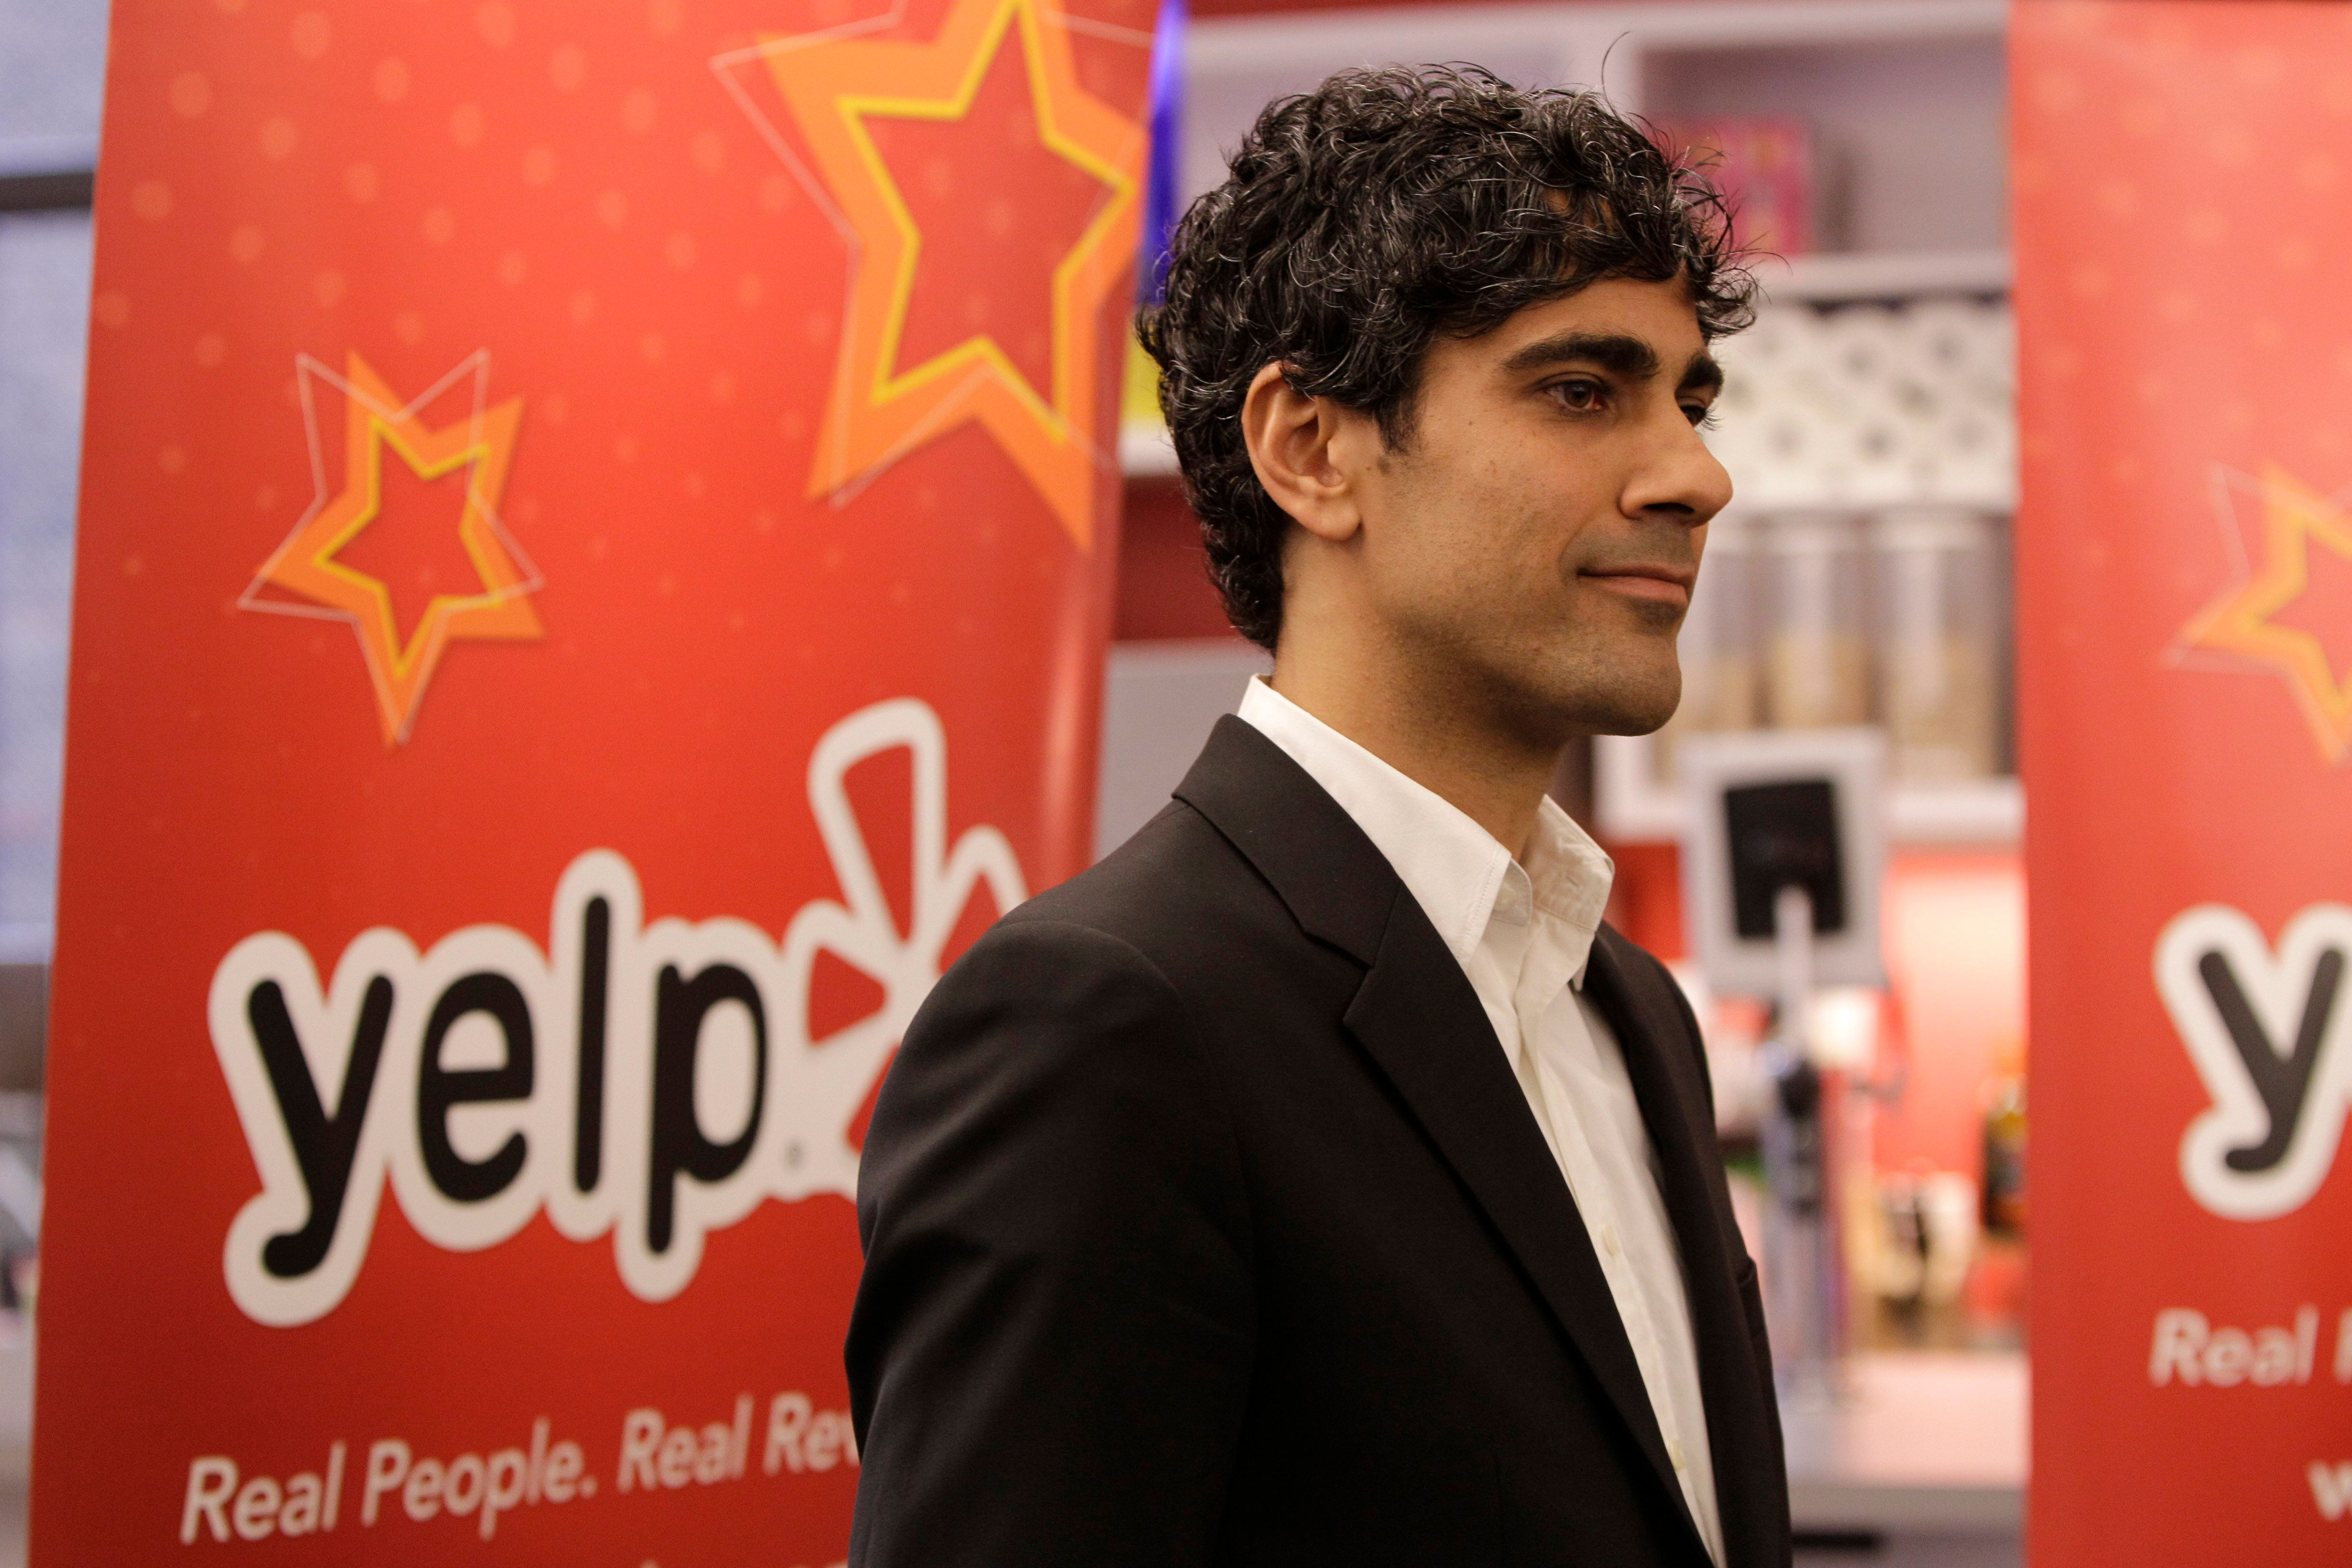 Yelp CEO and co-founder Jeremy Stoppelman is shown at the new Manhattan offices of the online reviews website in New York, Wednesday, Oct. 26, 2011. Yelp opened a 9,500 square-foot space in the same office building where Apple is located on Fifth Avenue near Union Square.  (AP Photo/Kathy Willens)